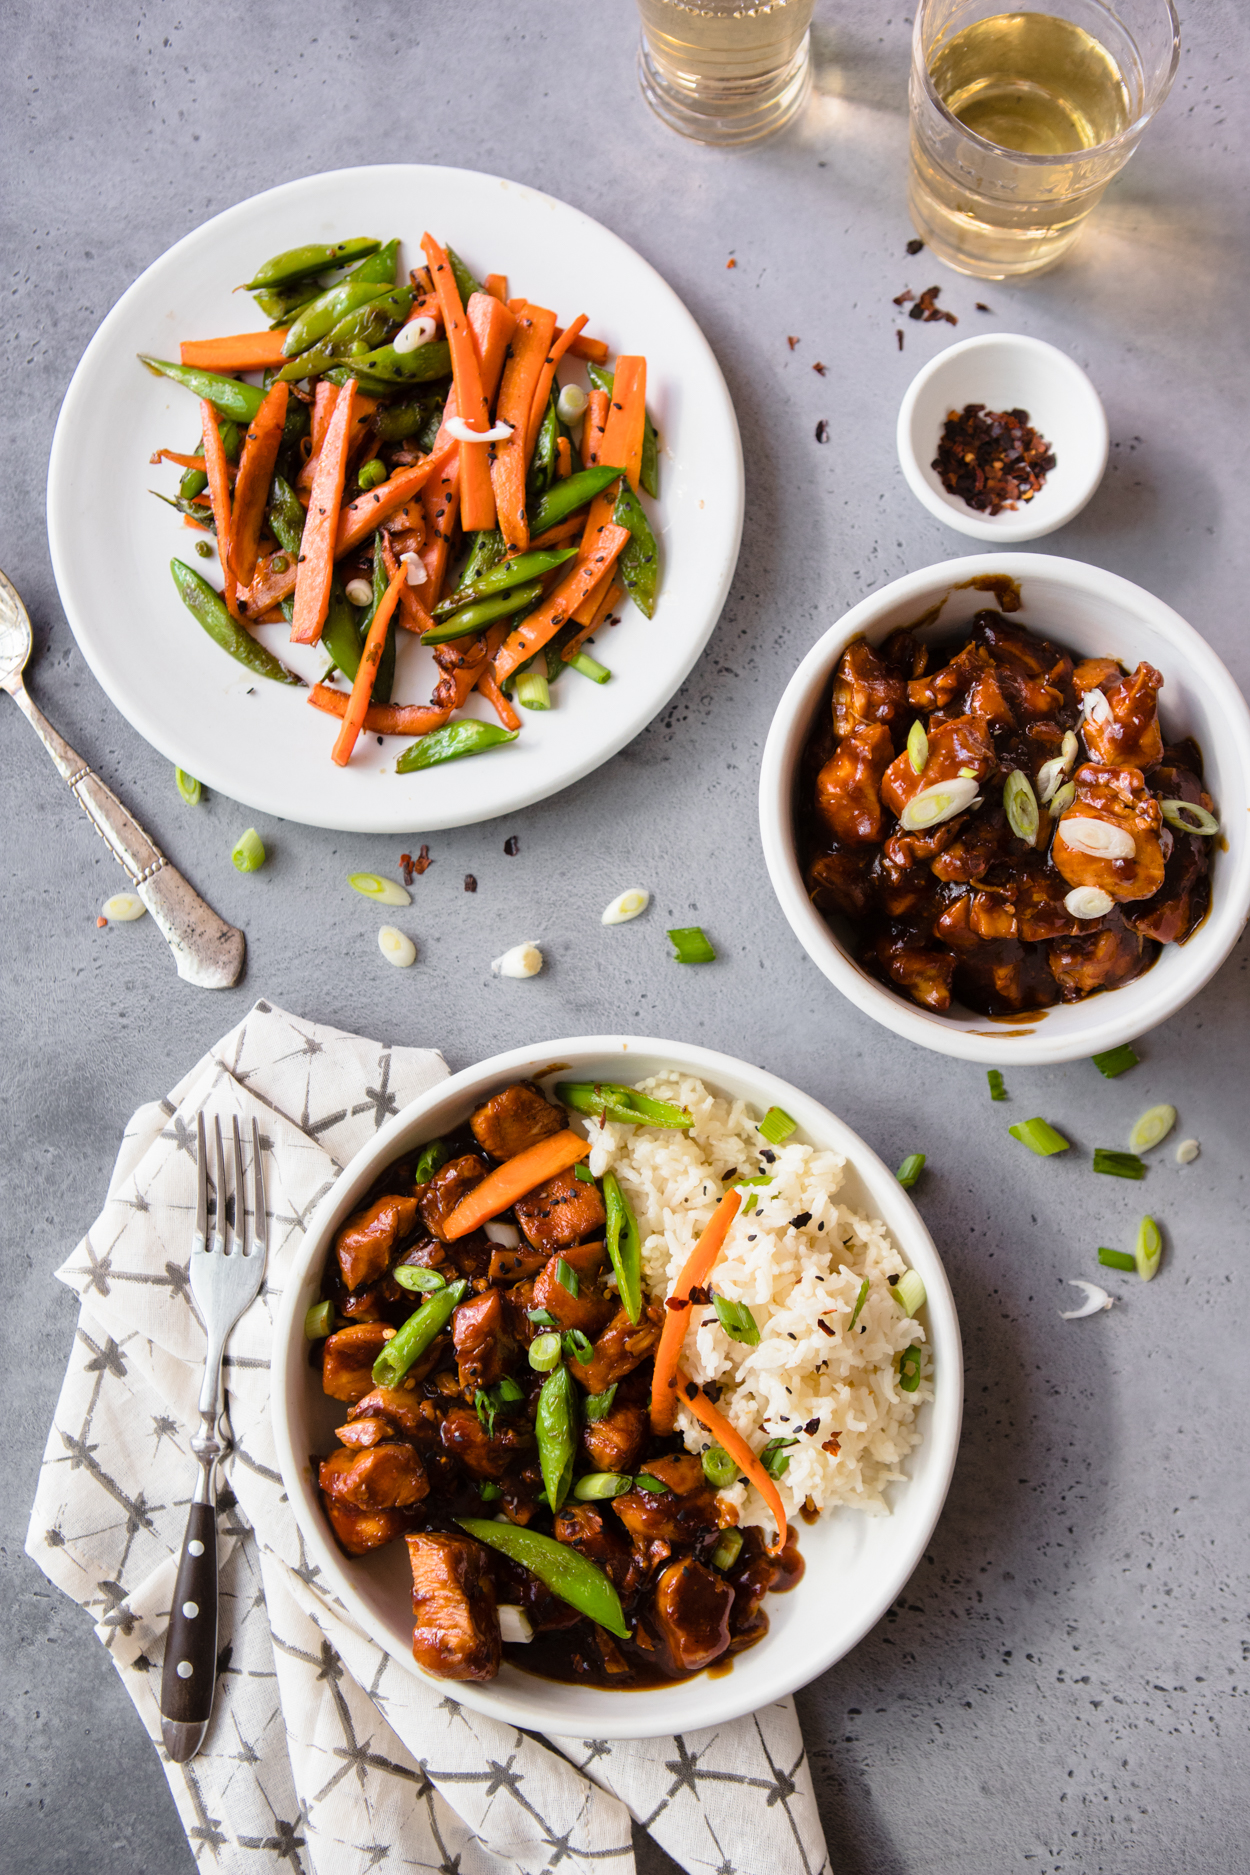 General Tso's Instant Pot Chicken in a white bowl with a side of carrots and snow peas, and a bowl of General Tso's Chicken and rice